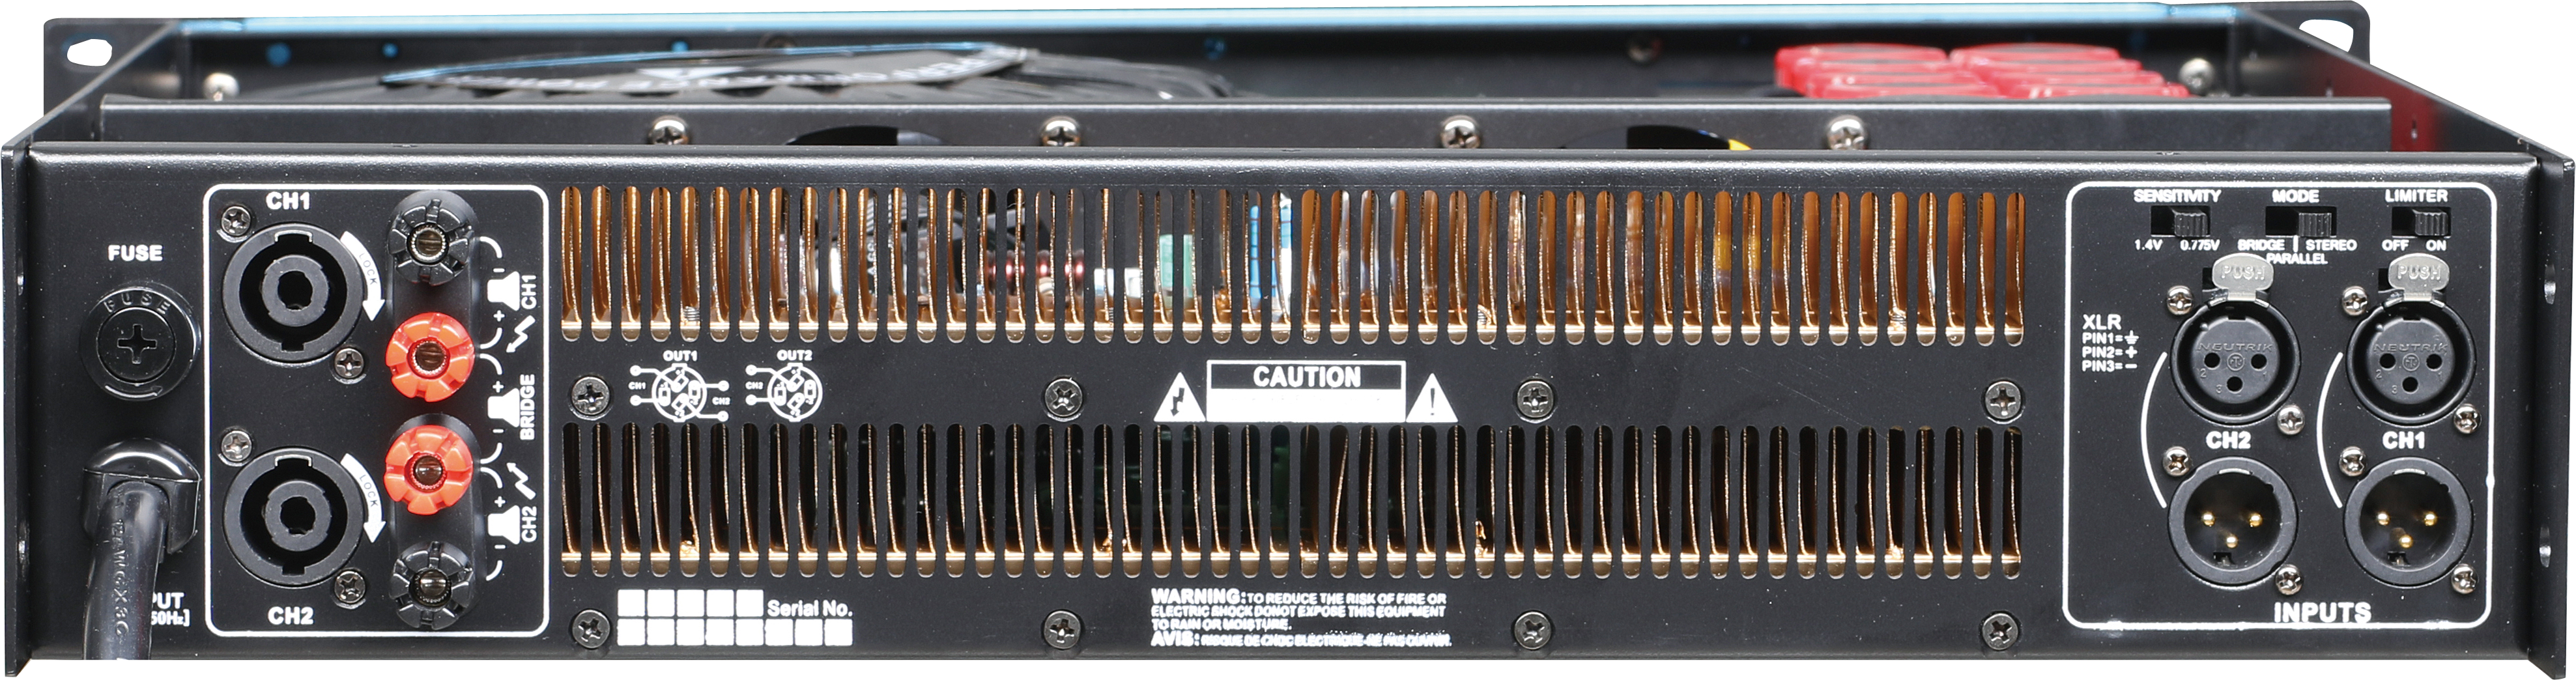 H series power amplifier